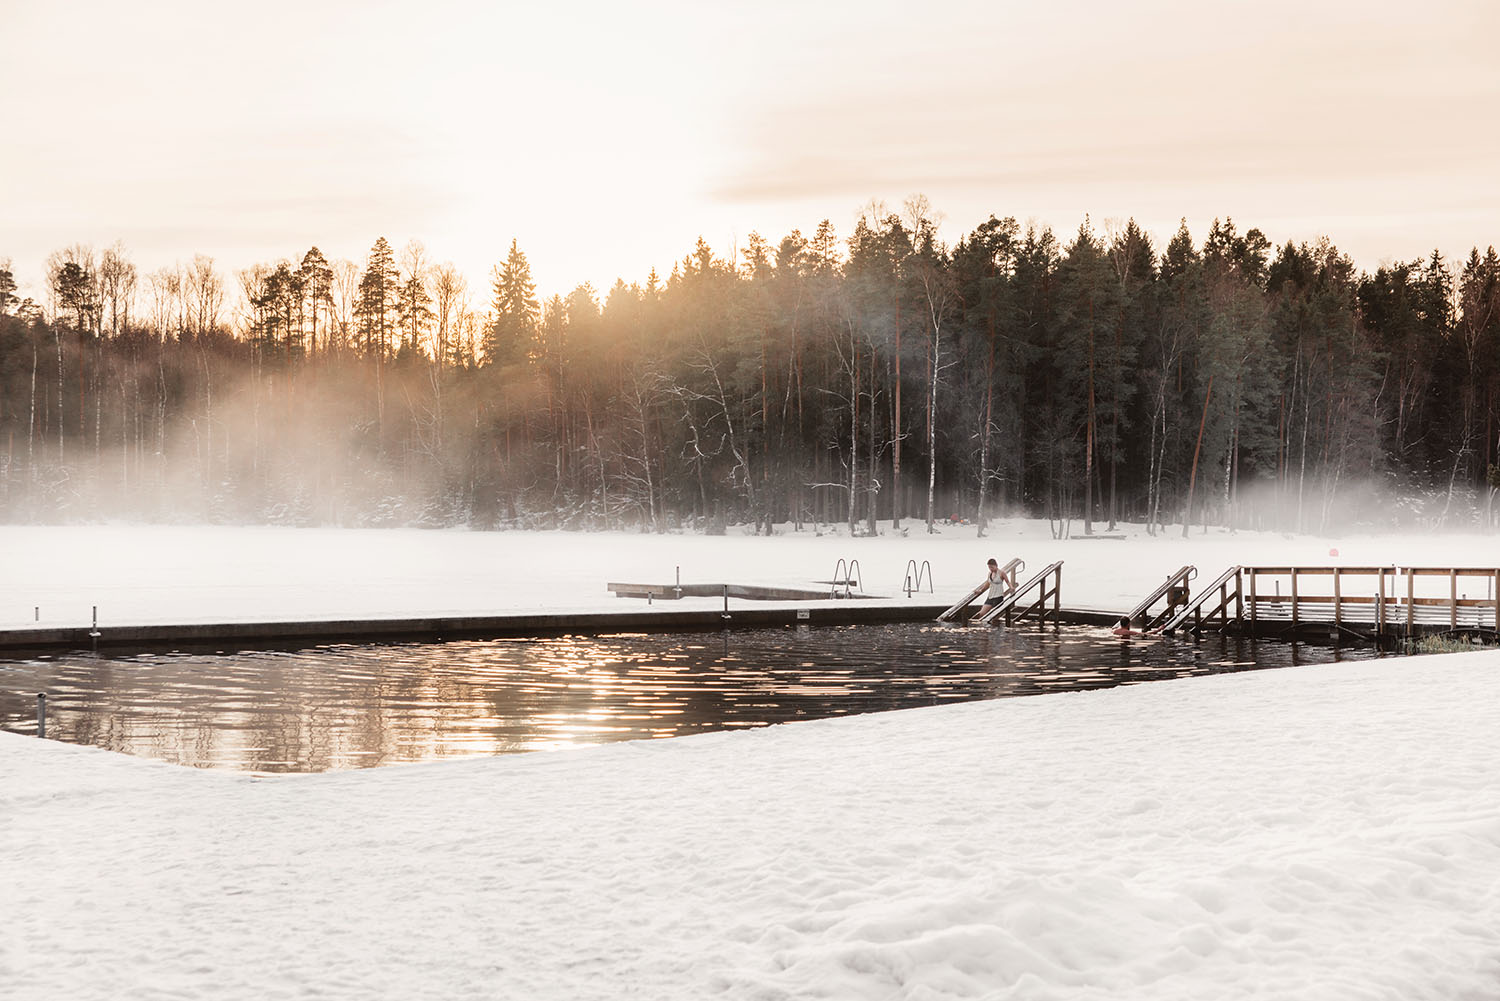 Ice Swimming at Kuusijärvi Lake in Vantaa - Isvak i Hanaböle träsk